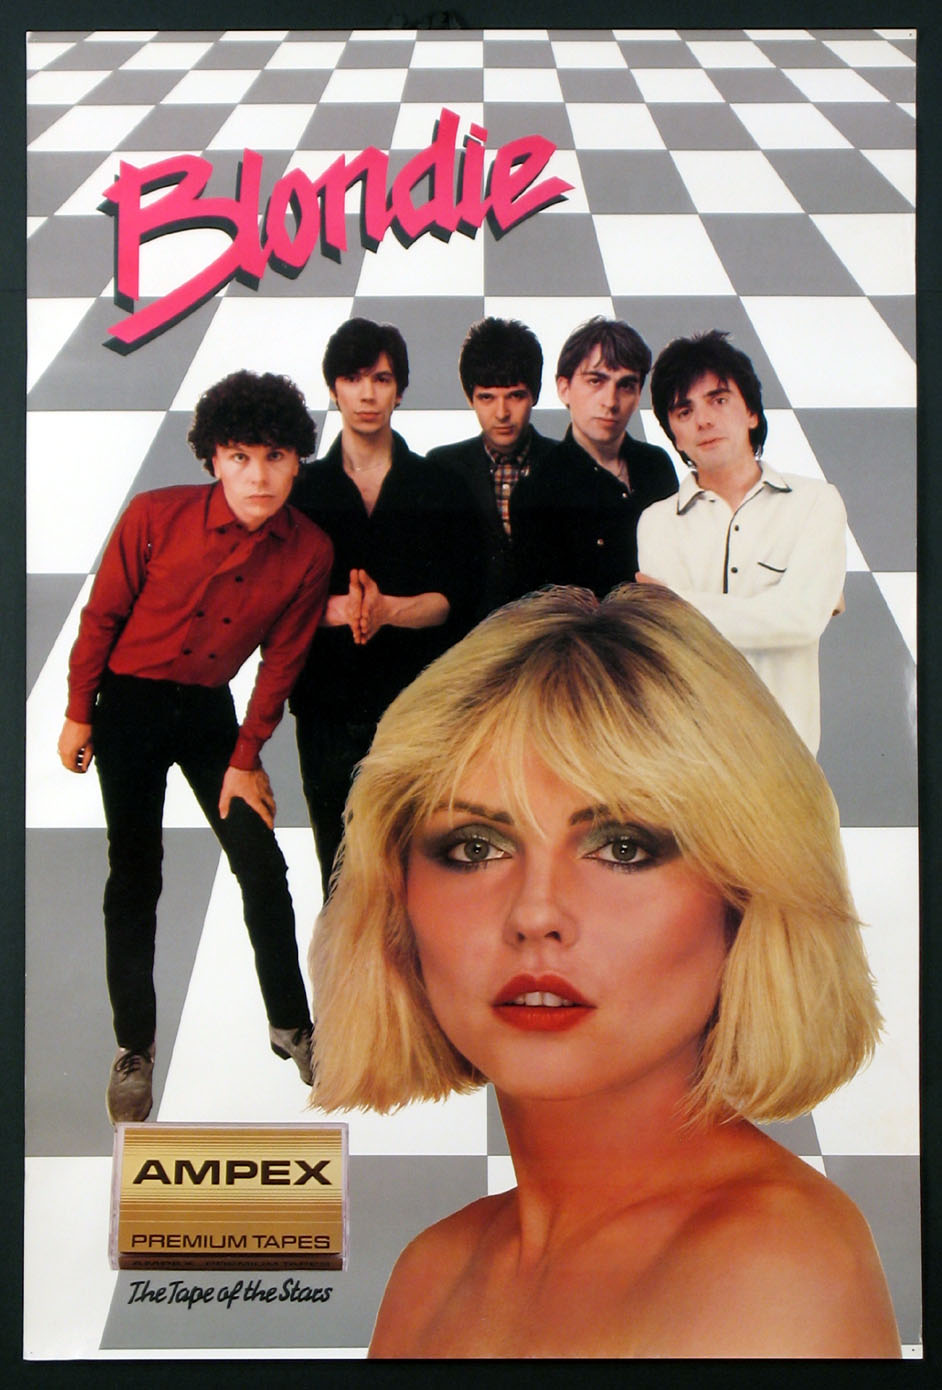 BLONDIE AMPEX TAPES ADVERTISING POSTER @ FilmPosters.com